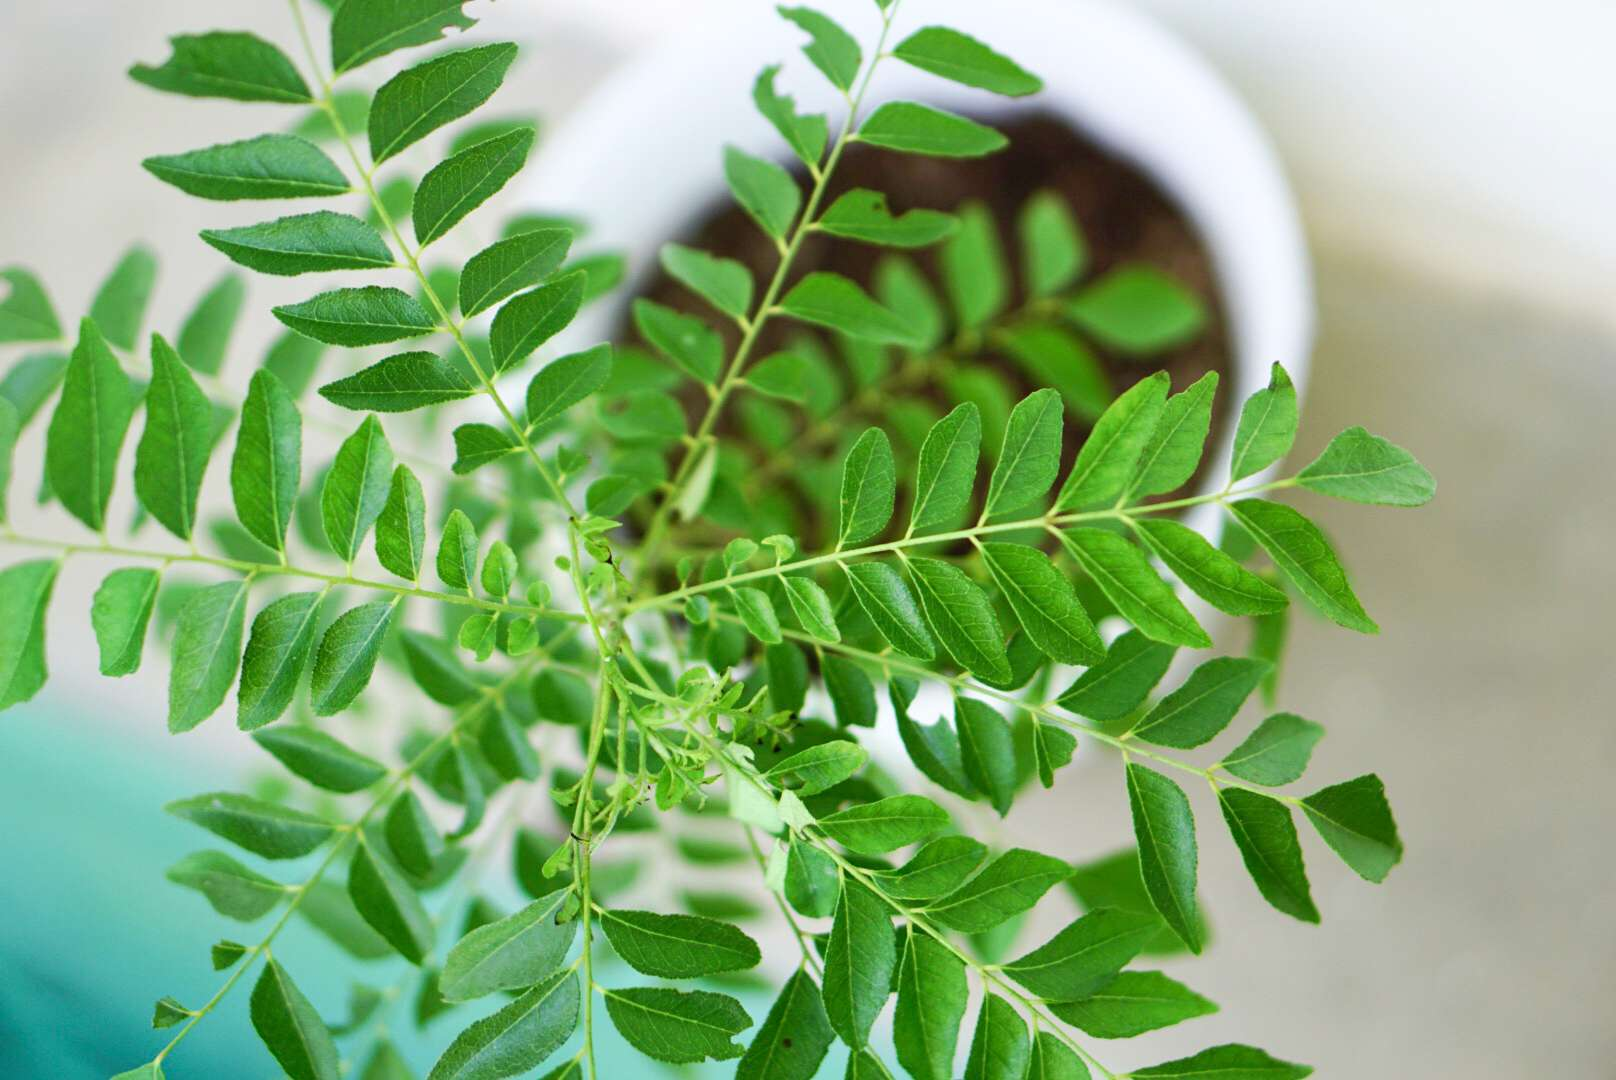 Curry tree plant with radiating branches and leaflets from above